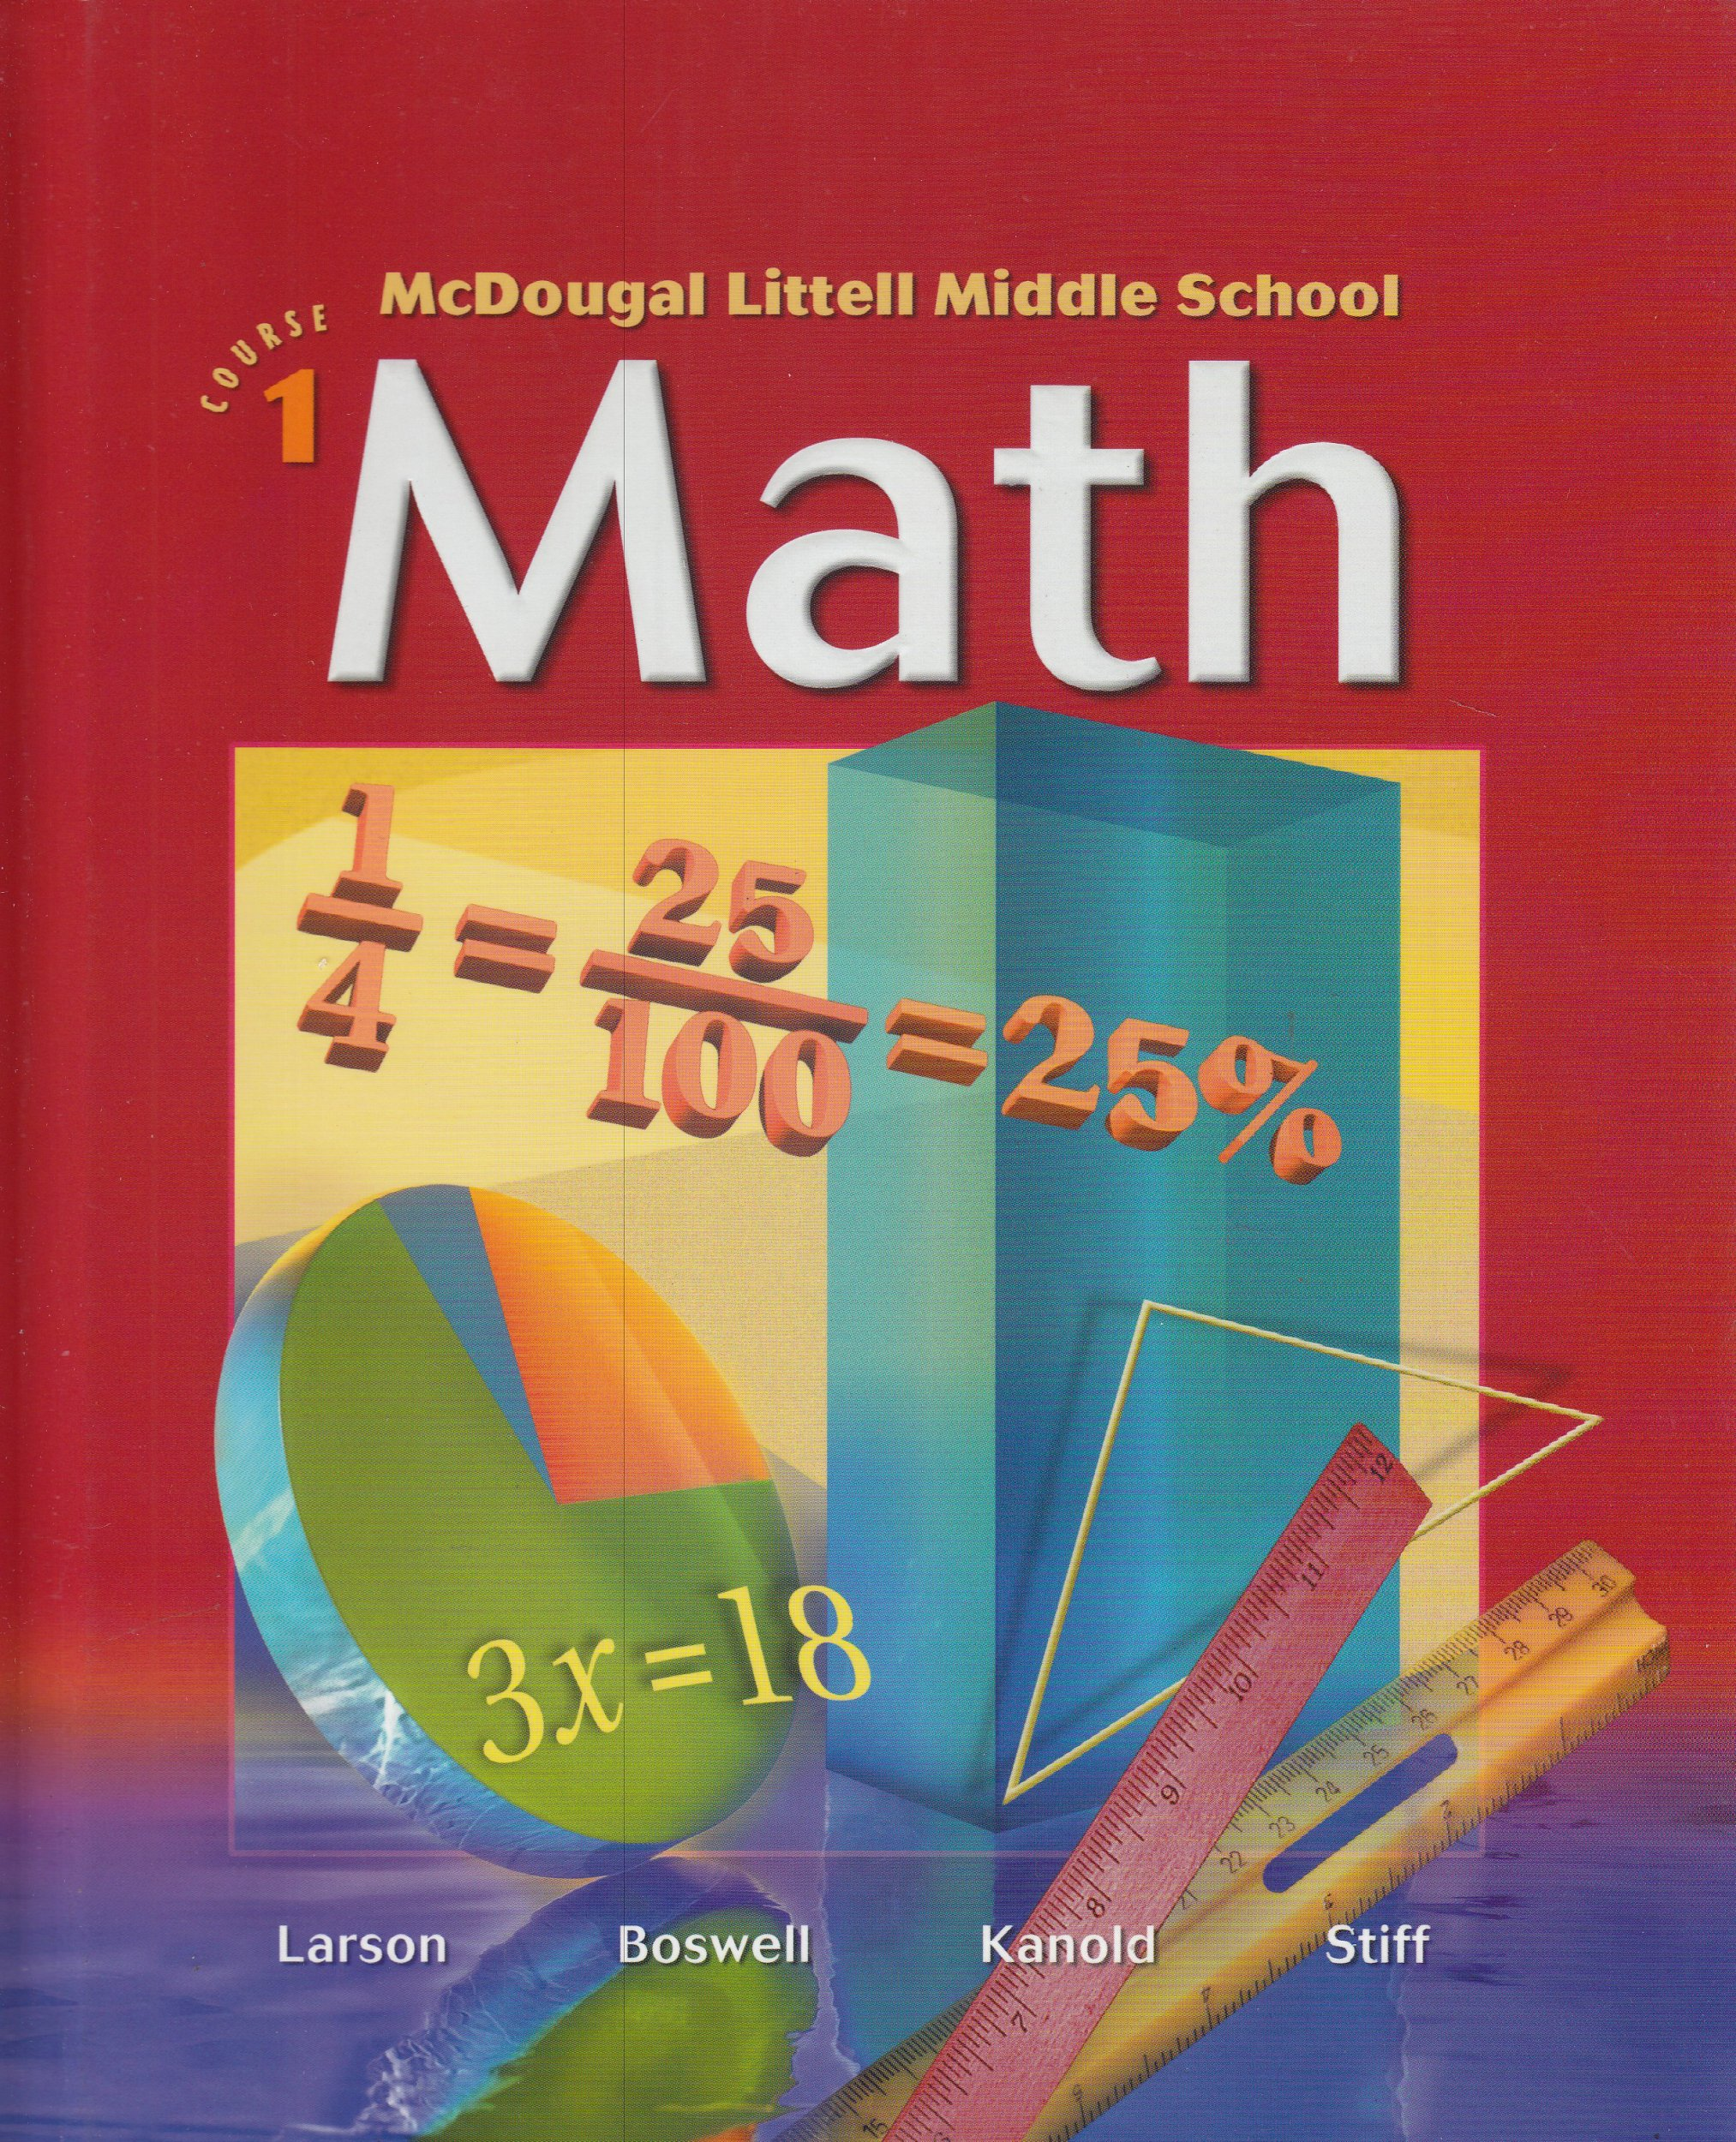 Kids Maths Book Cover : Holt middle school math worksheets my homework lesson